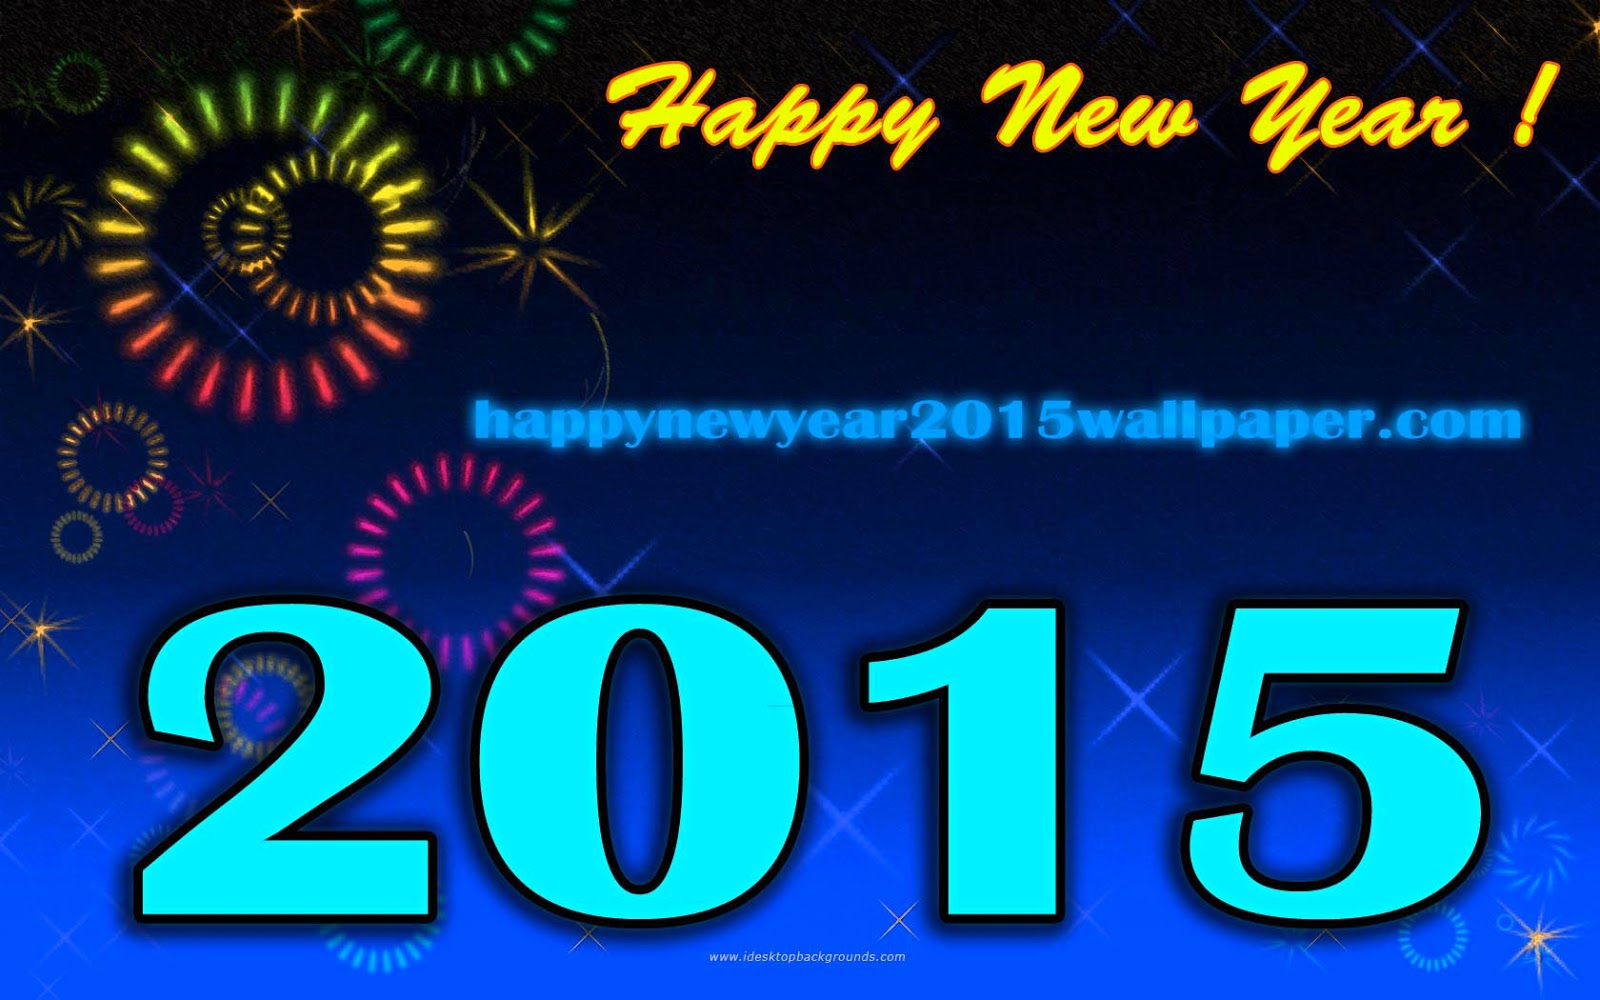 happy new year 2015 wallpaper for greetings Use these 2015 happy new 1600x1000